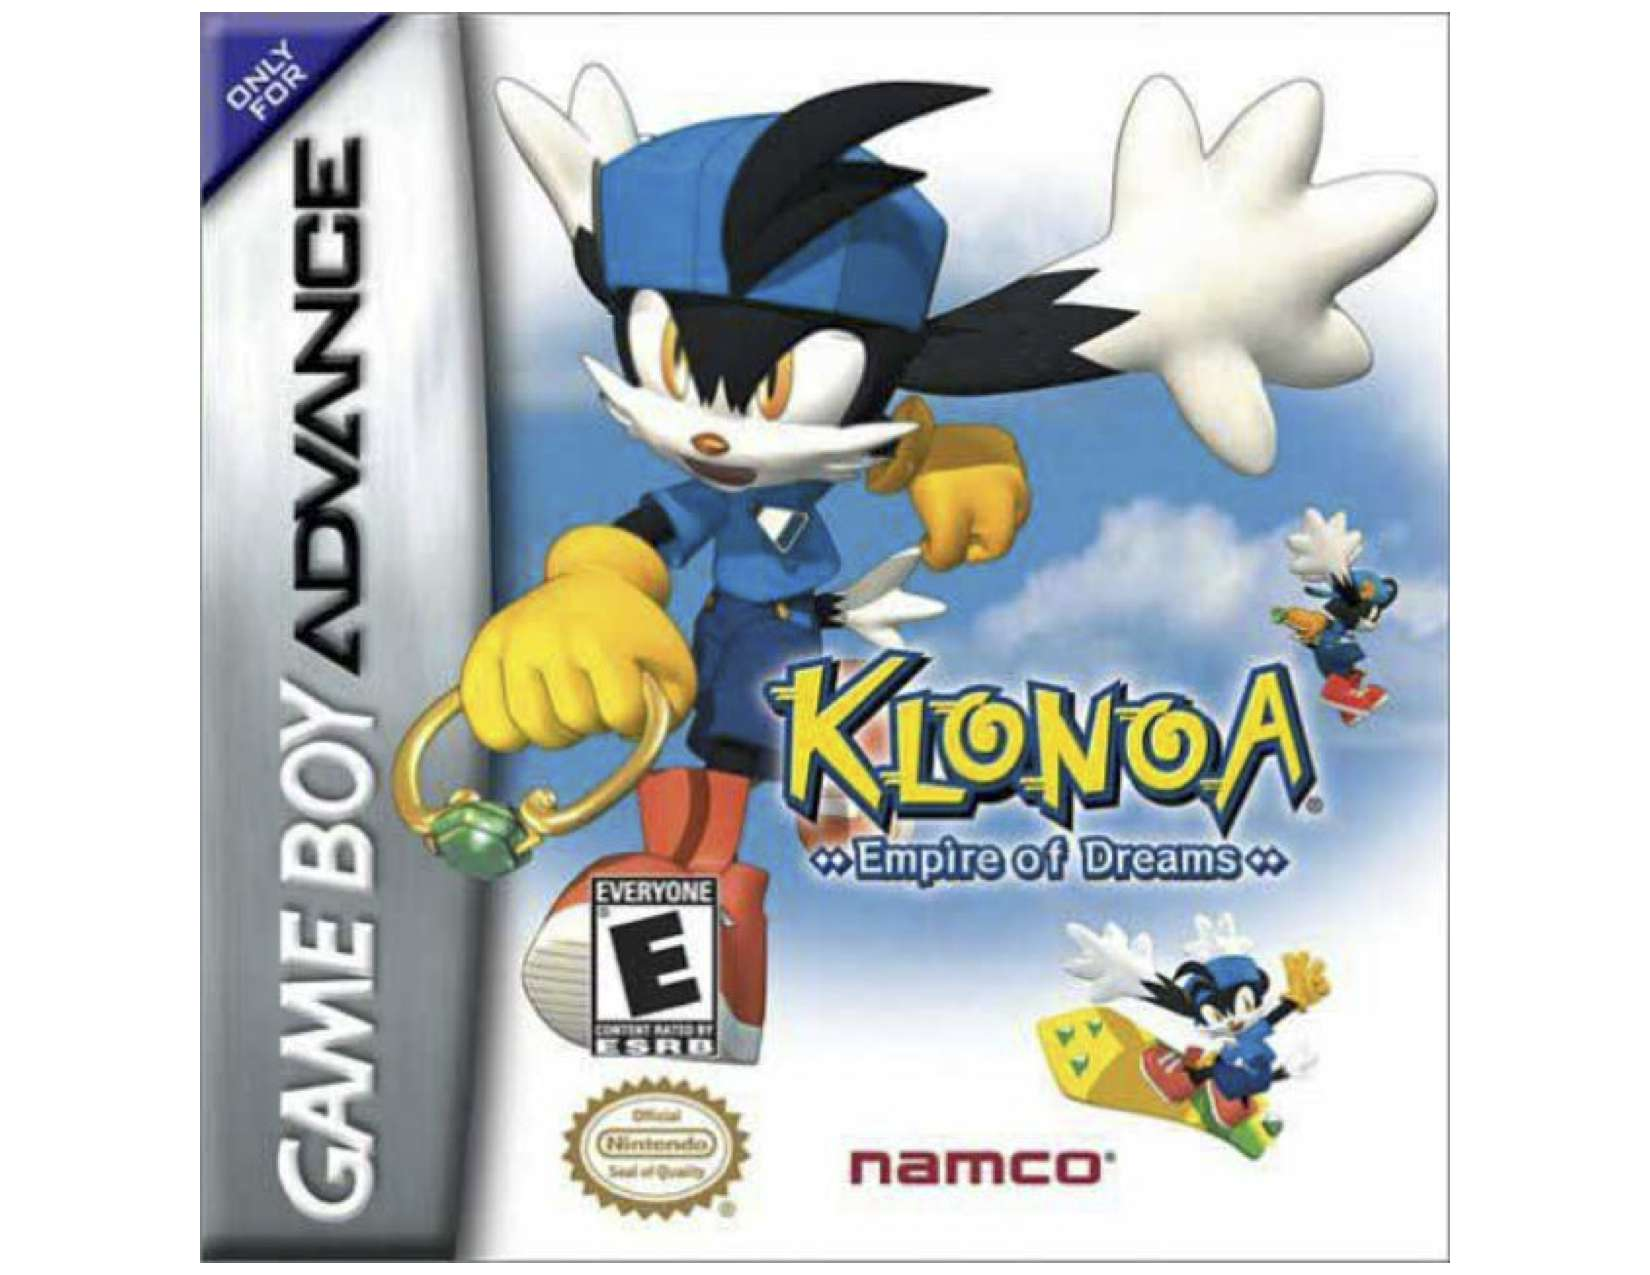 The Top 10 Action Games for the Game Boy Advance